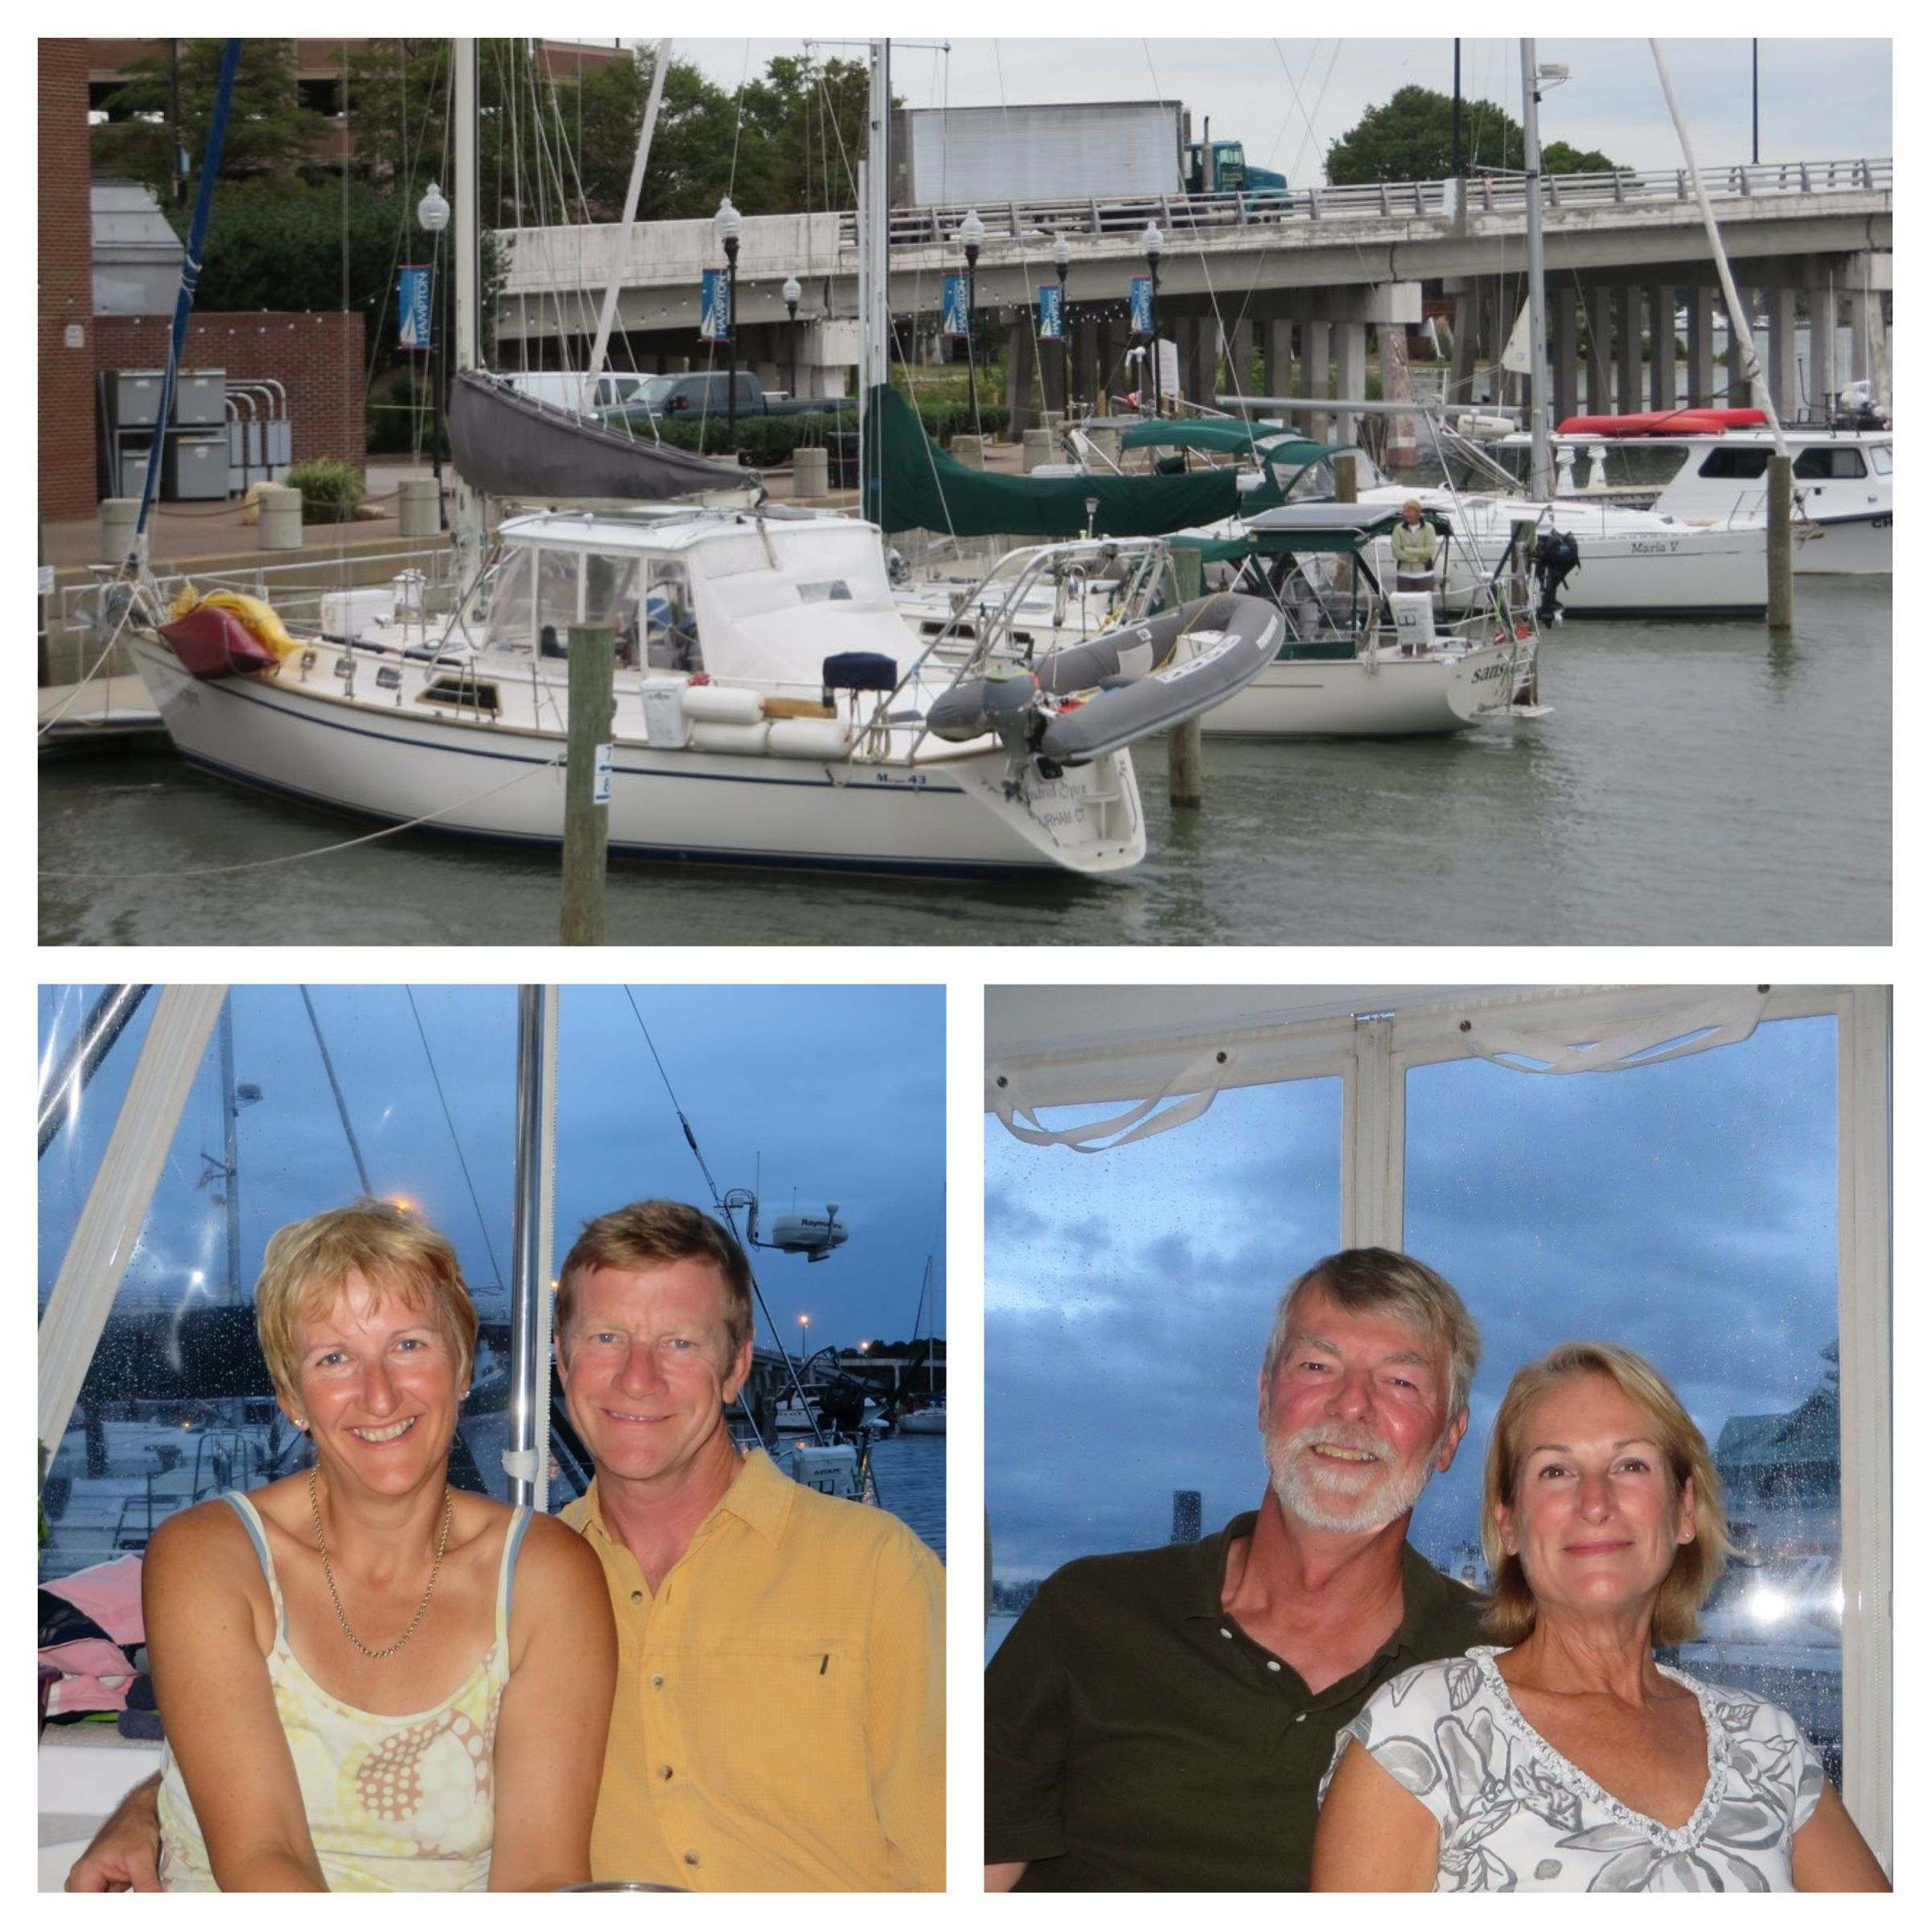 ~ Kindred Spirit and Sans Cles at dock ~ Dinner guests! What fun!